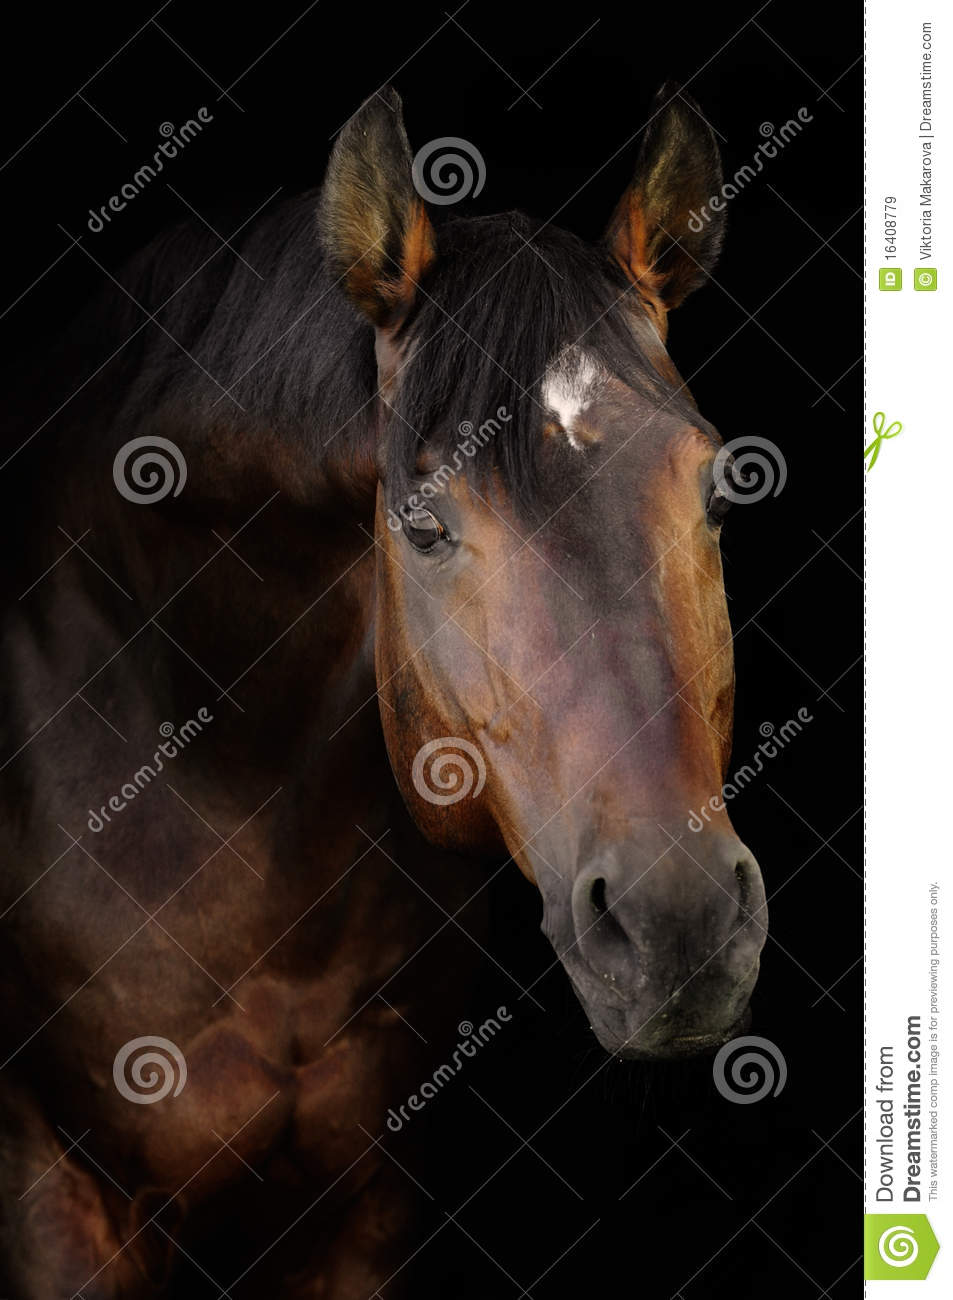 Bay horse in darkness